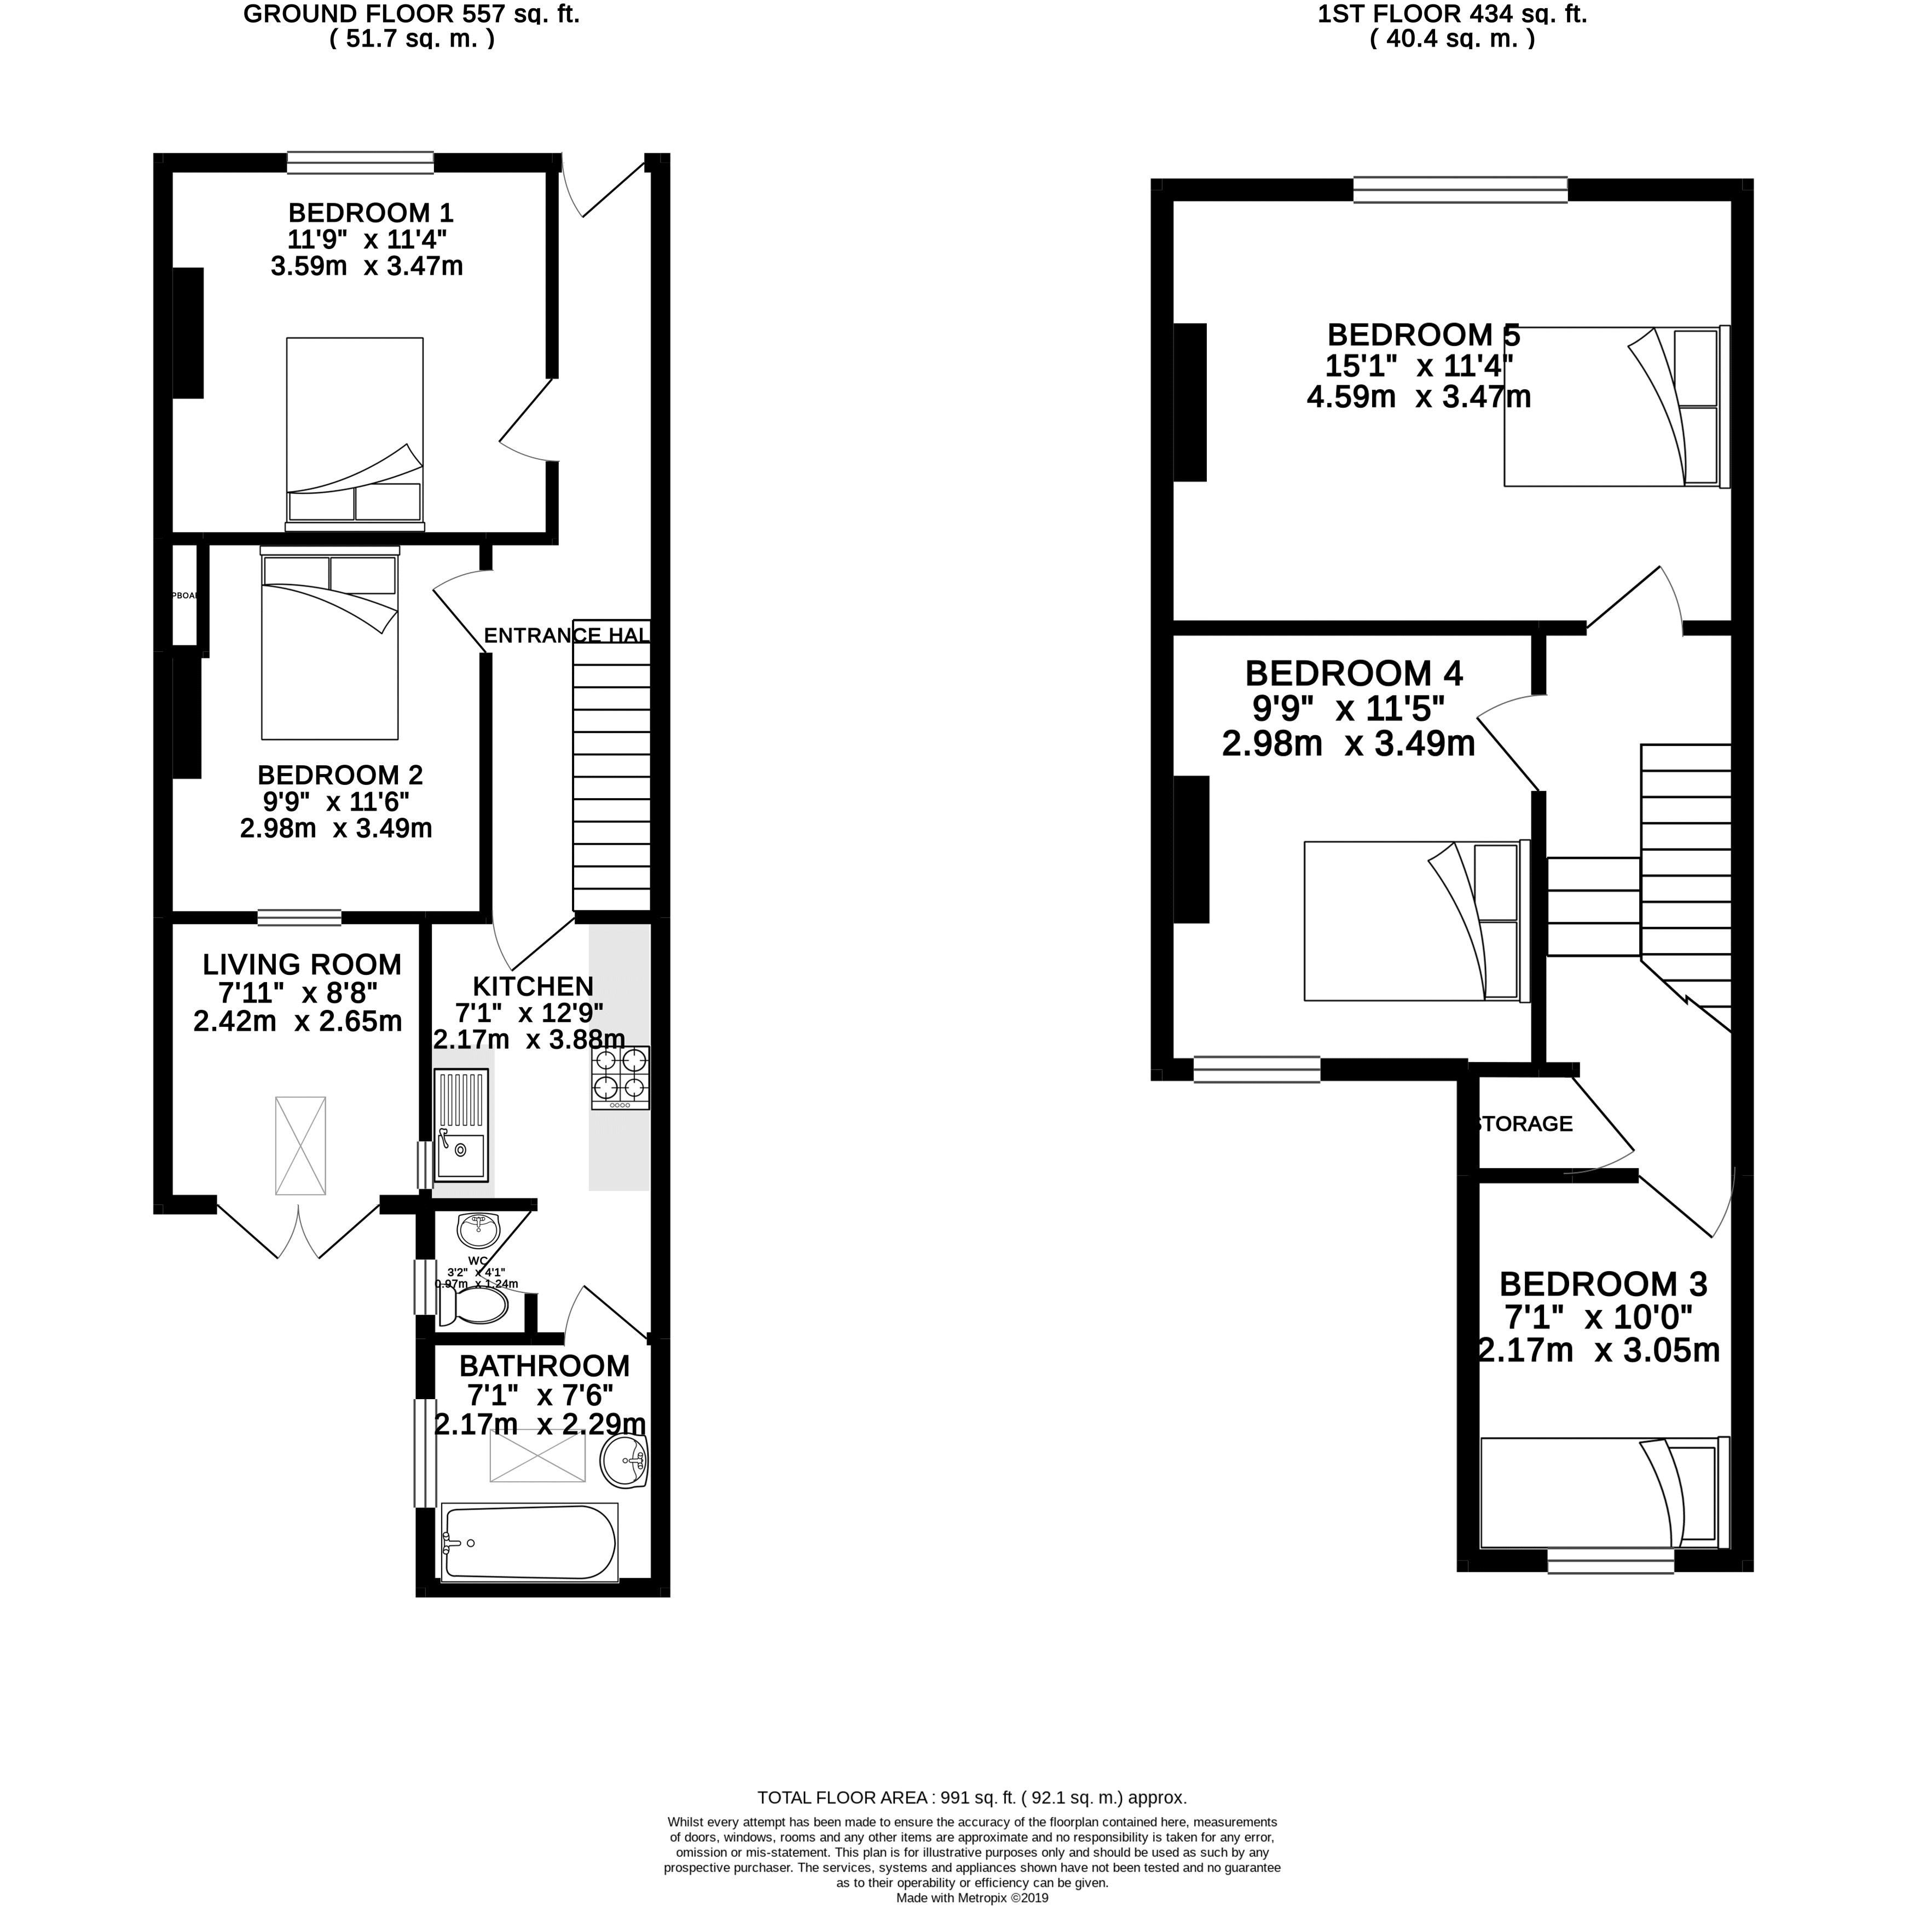 Floor plans for Brading Road, Brighton property for sale in Hanover, Brighton by Coapt